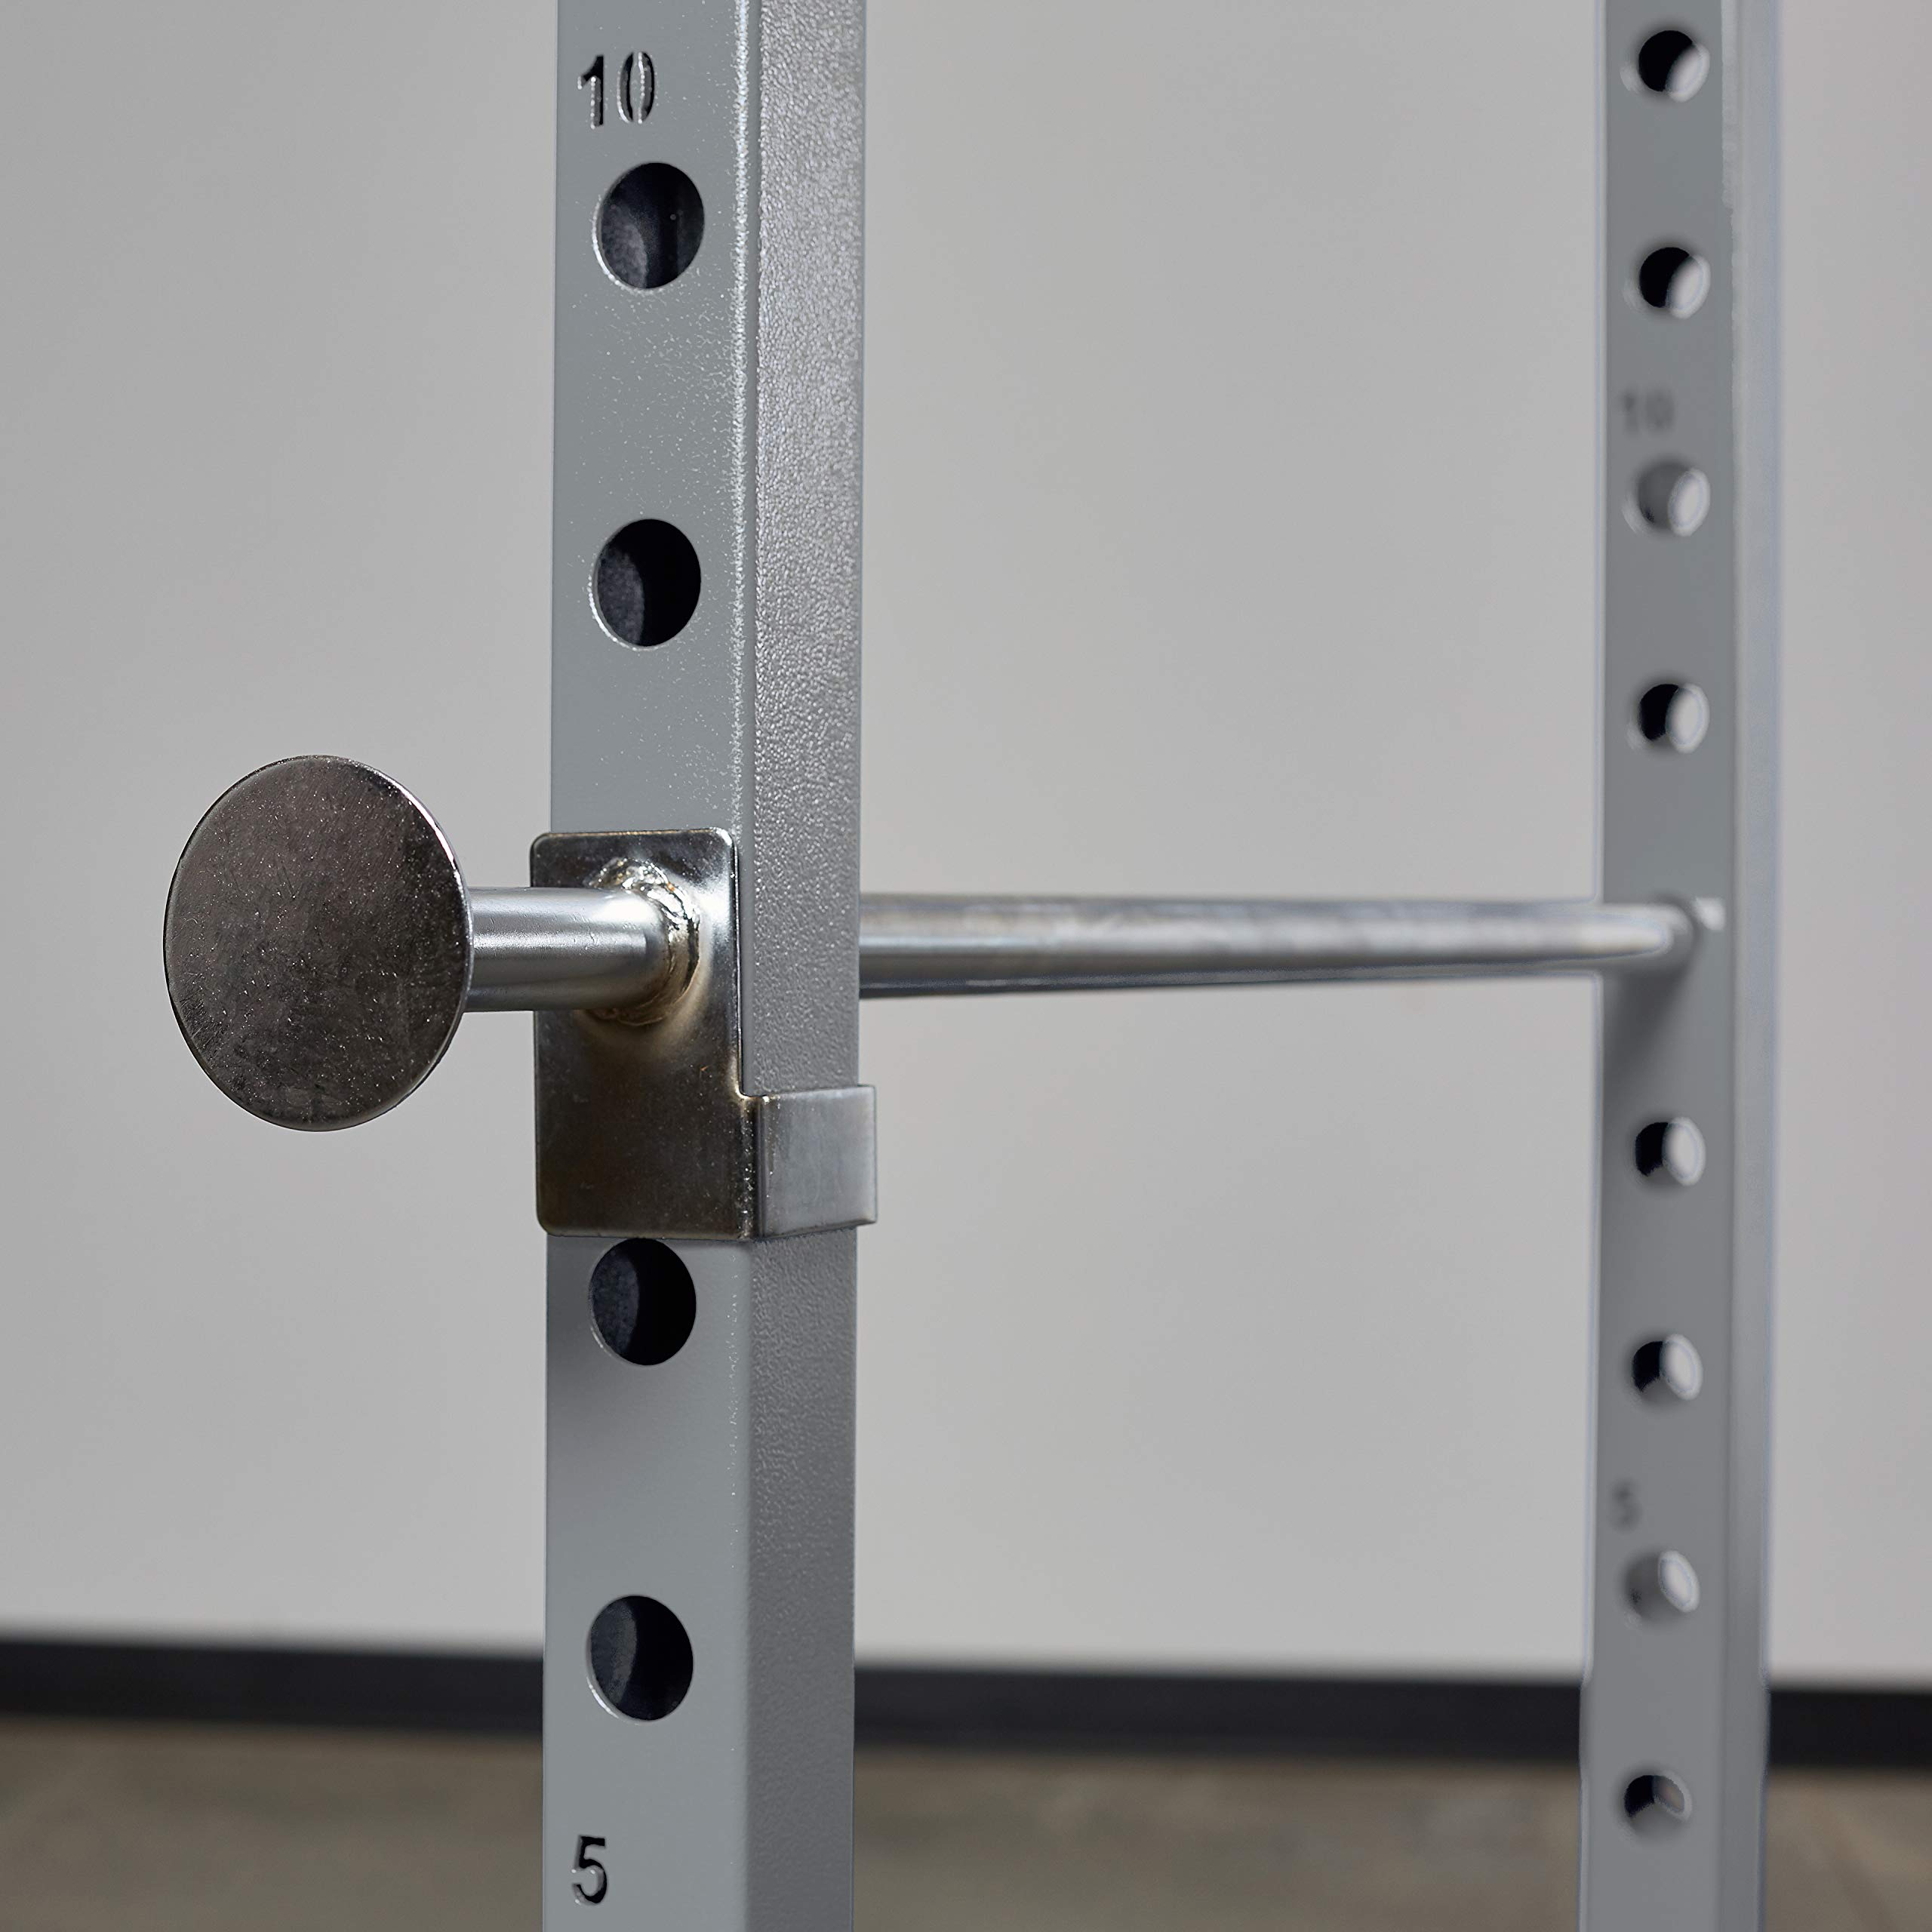 Rep PR-1100 Power Rack - 1,000 lbs Rated Lifting Cage for Weight Training (Silver Power Rack, No Bench) by Rep Fitness (Image #3)